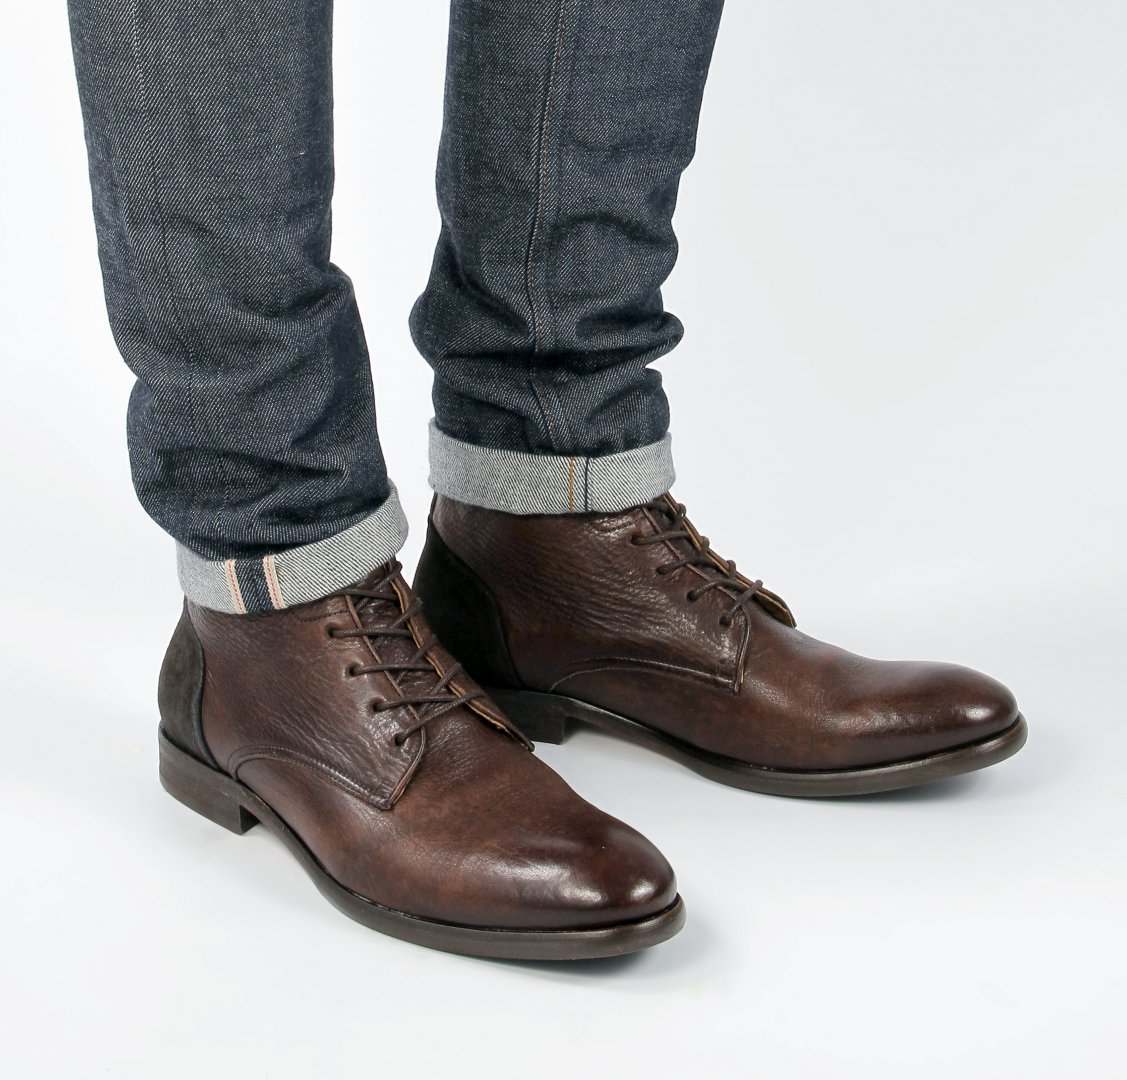 Hudson Shoes Brown Leather Yoakley Brown Boot